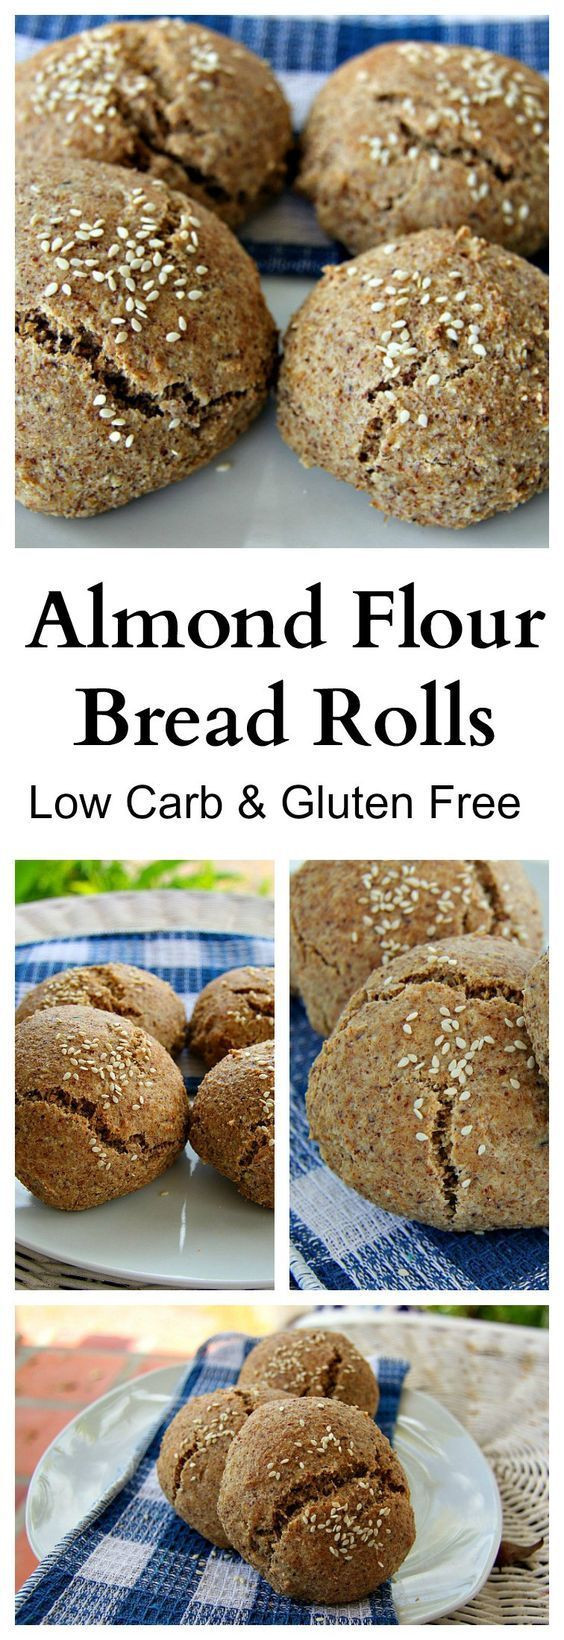 Almond Flour Recipes Low Carb  119 best images about Primal Paleo Breads on Pinterest